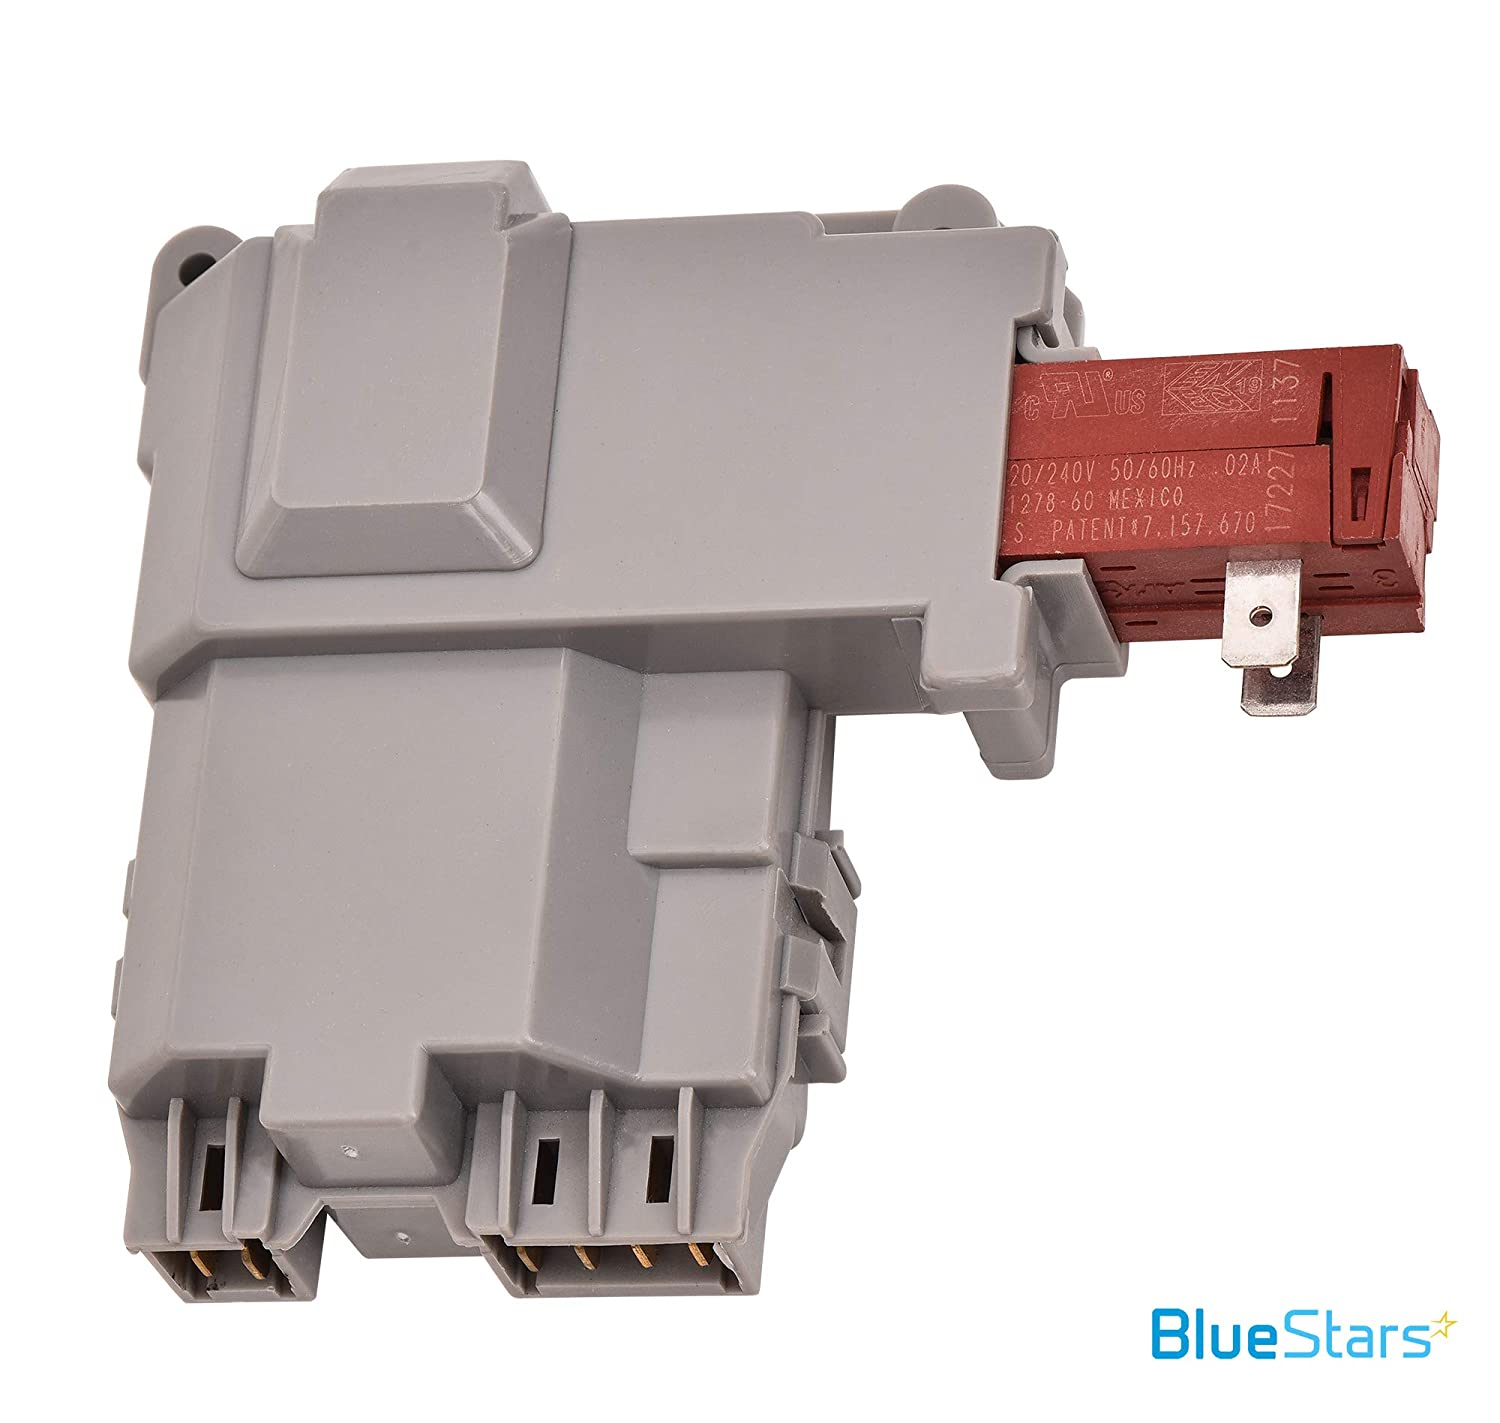 Replaces 131269400 131763200 131763245 Exact Fit For Frigidaire /& Kenmore Washers Ultra Durable 131763202 Washer Lid Switch Replacement Part by Blue Stars UPGRADED